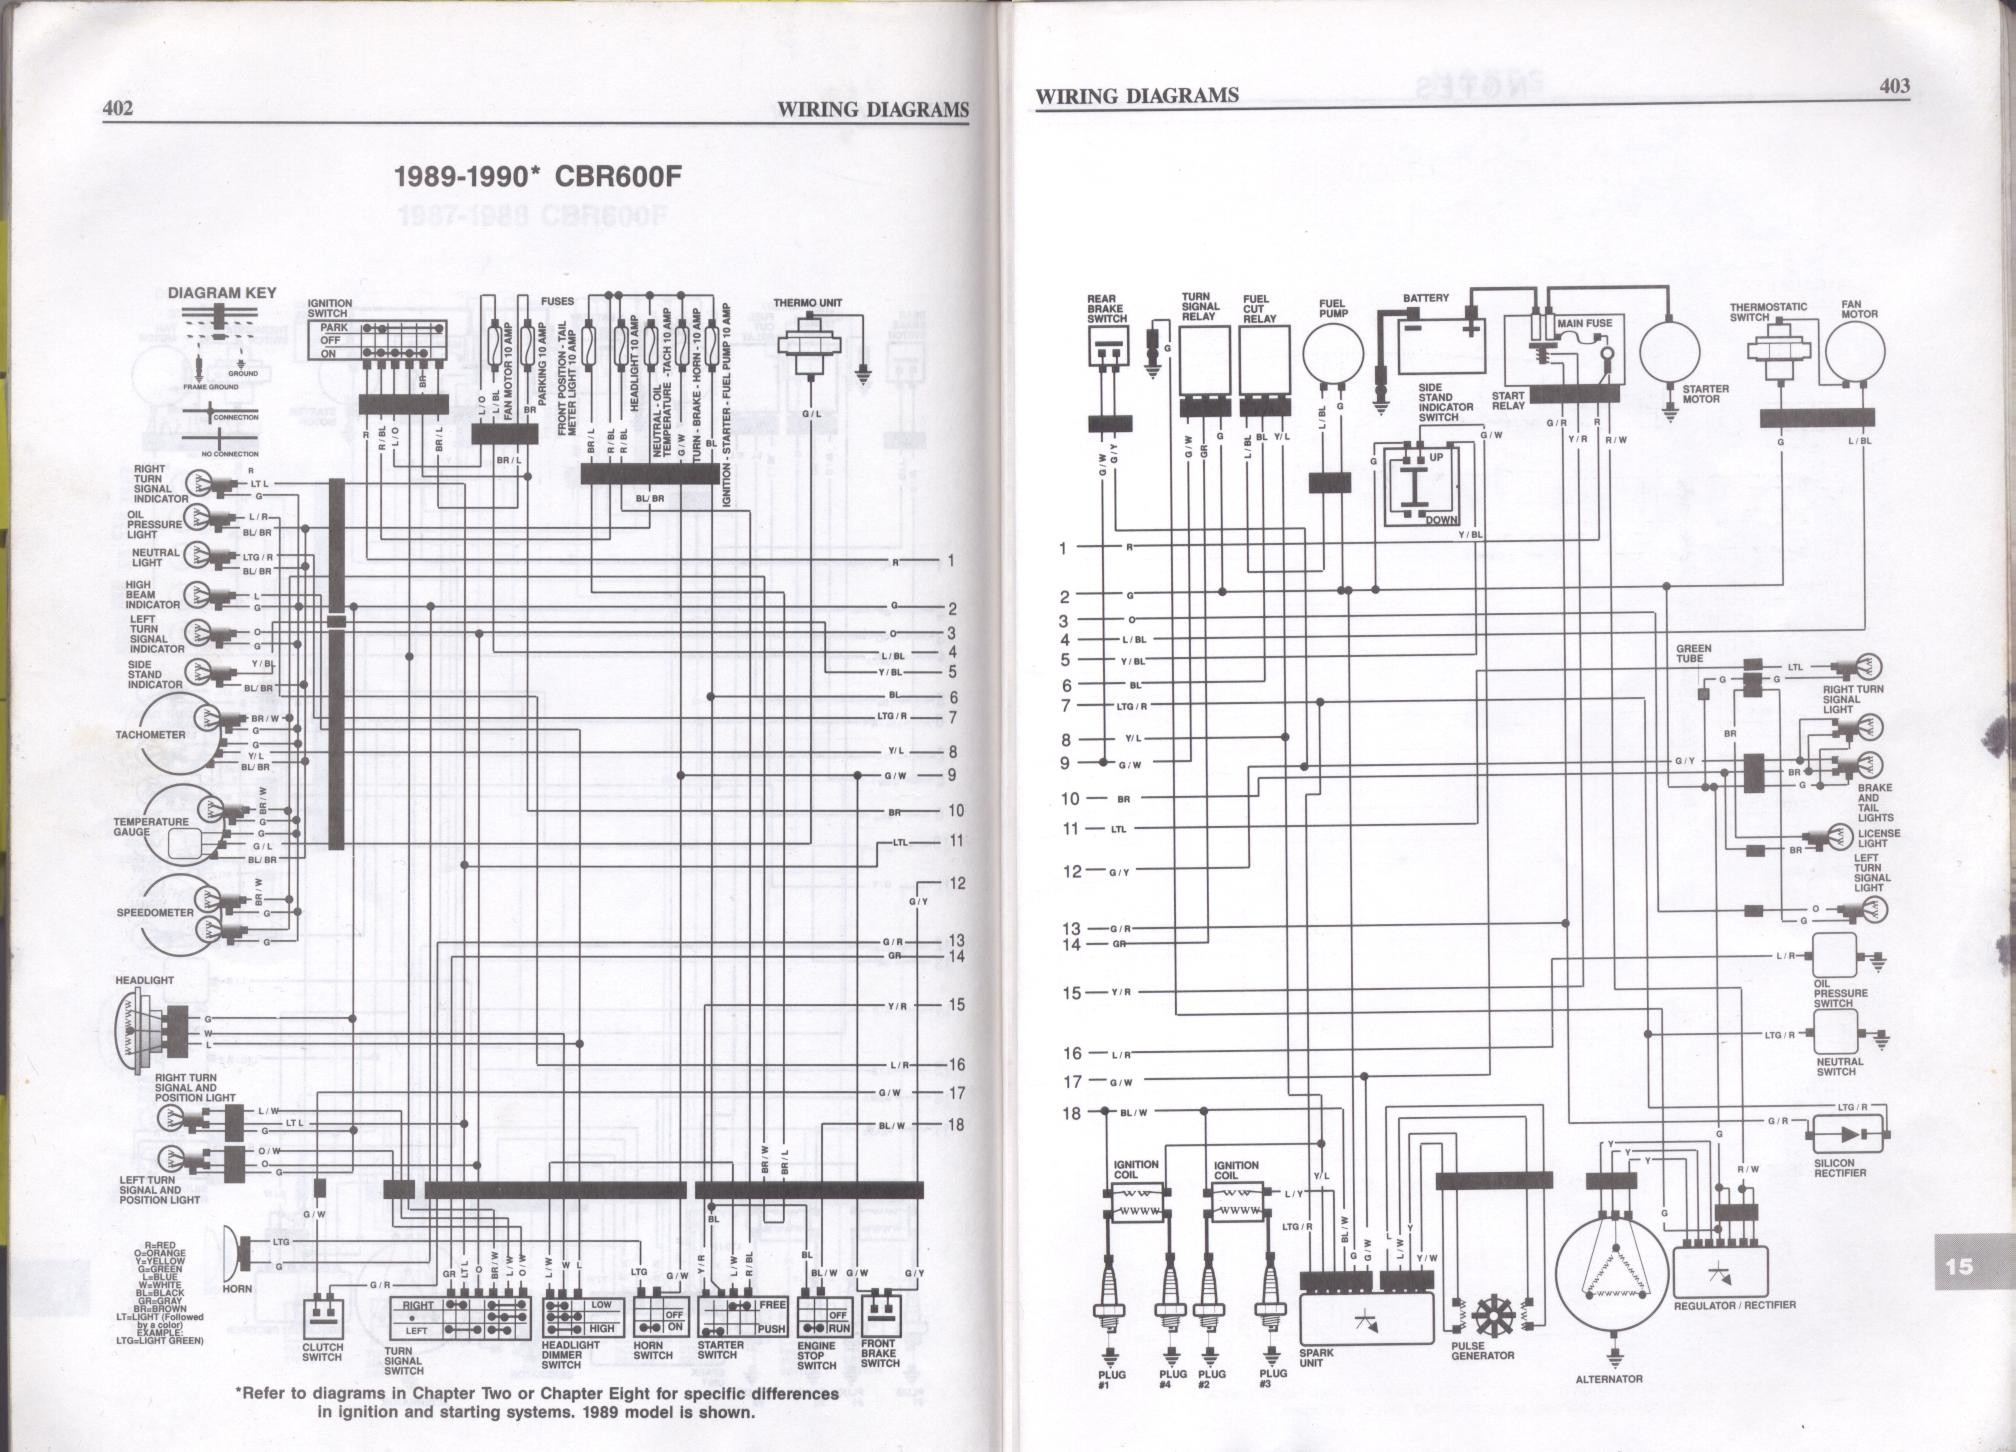 honda wave motorcycle wiring diagram 2001 ford f250 headlight switch hondacg125wiringdiagramsinglecylinderenginejpg 1600827